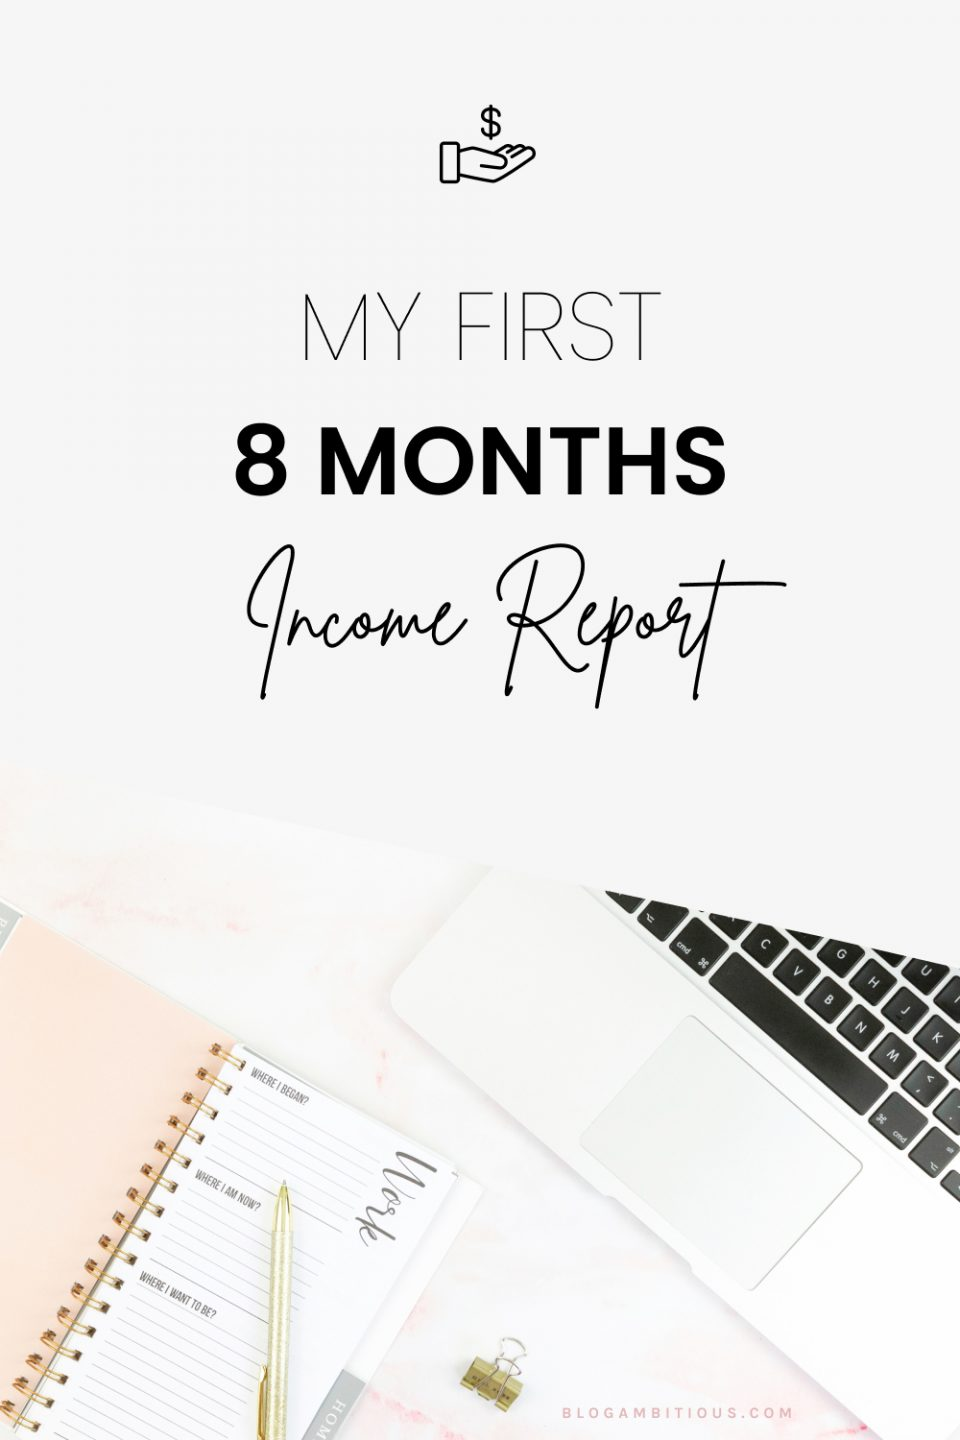 My First 8 Months Blog Income Report